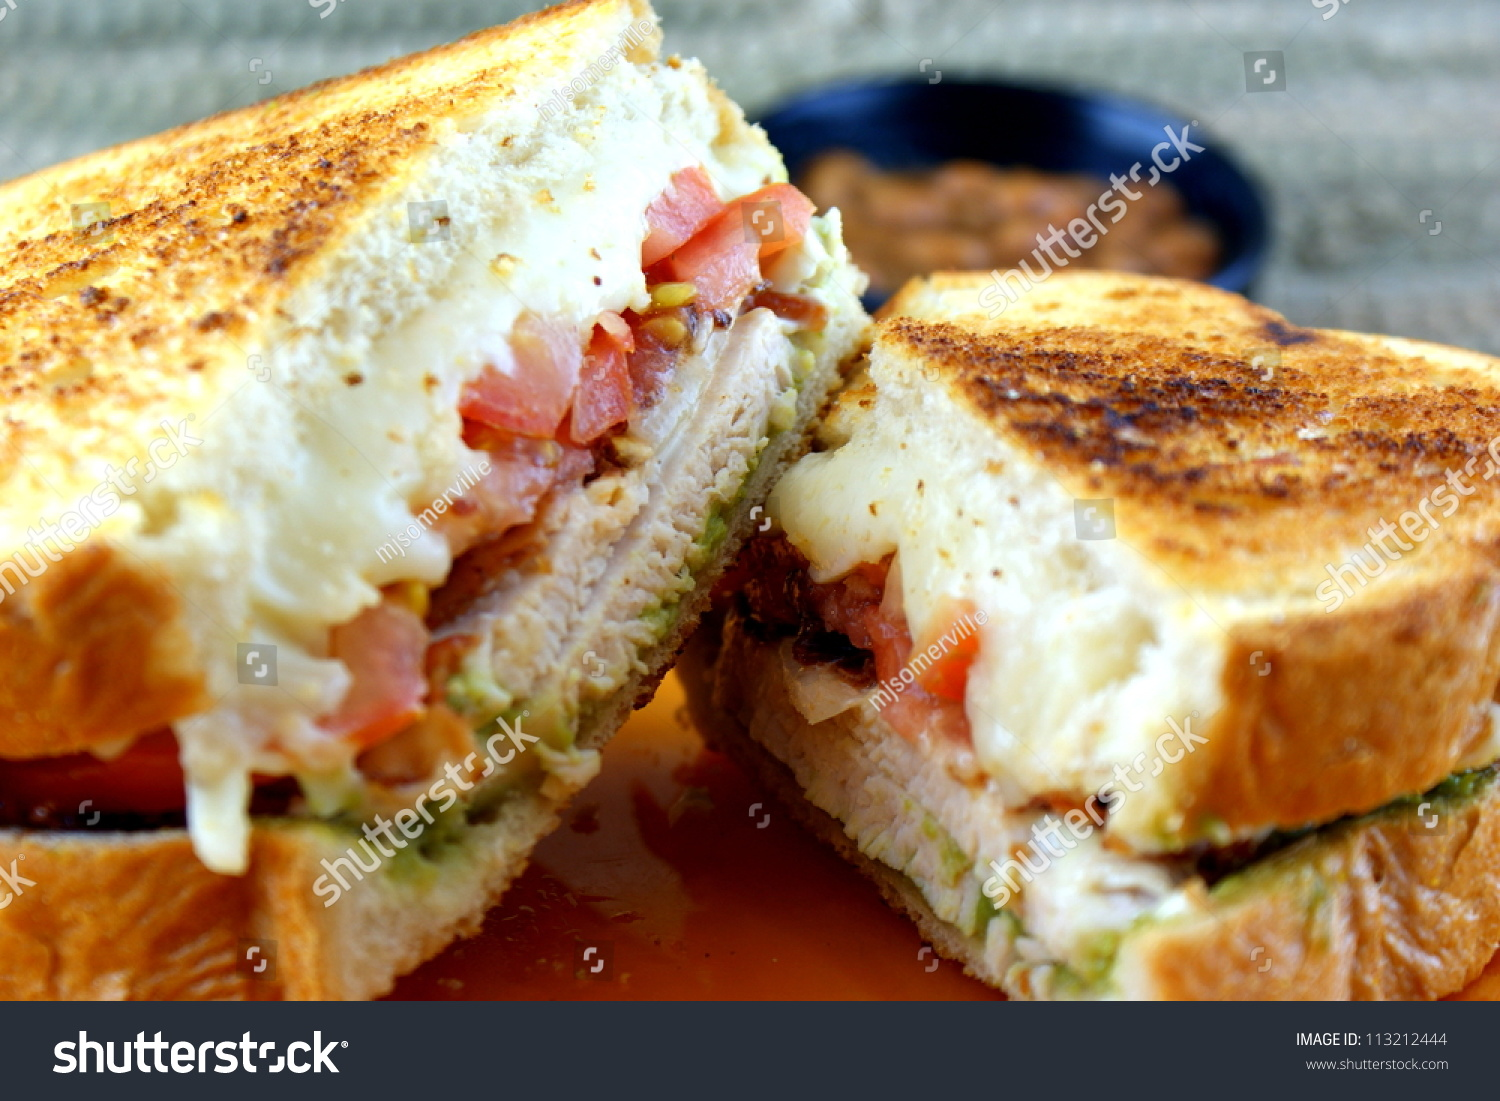 Grilled Chicken Sandwich With Avocado And Tomato Recipes — Dishmaps